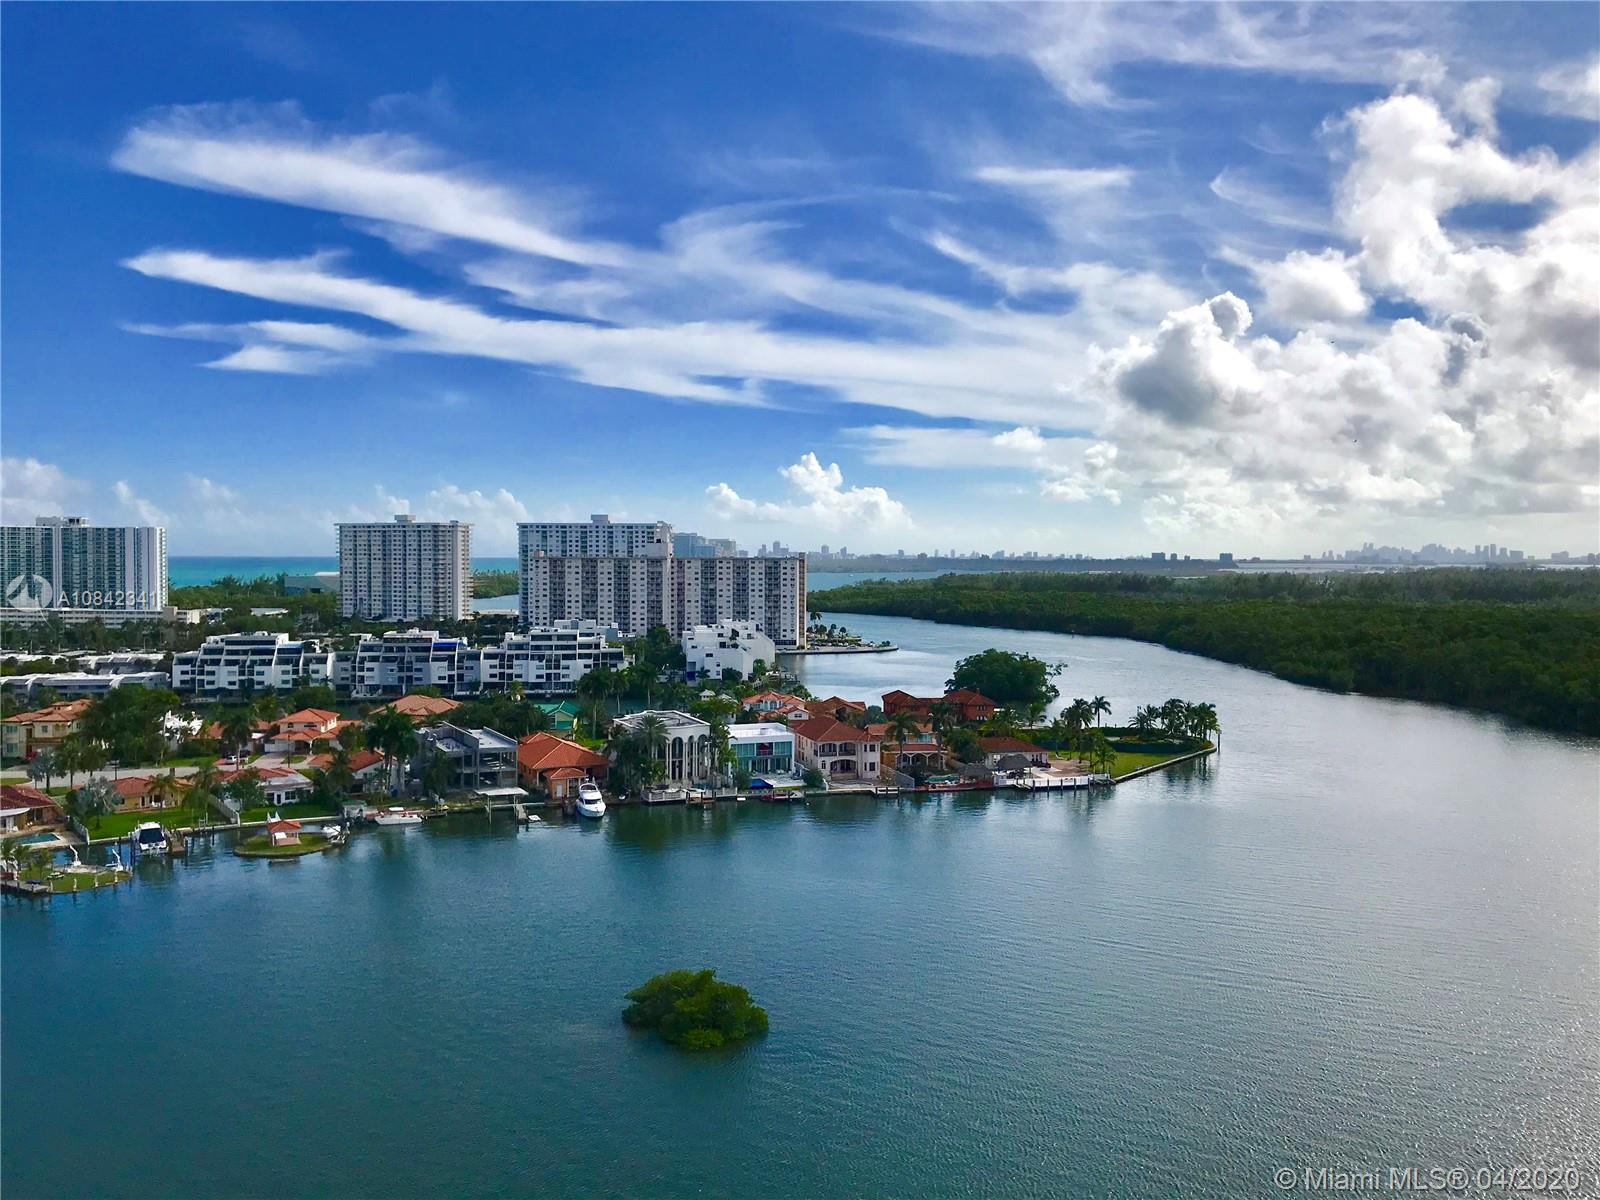 400 Sunny Isles Blvd # 1601, Sunny Isles Beach, Florida 33160, 3 Bedrooms Bedrooms, ,3 BathroomsBathrooms,Residential,For Sale,400 Sunny Isles Blvd # 1601,A10842341